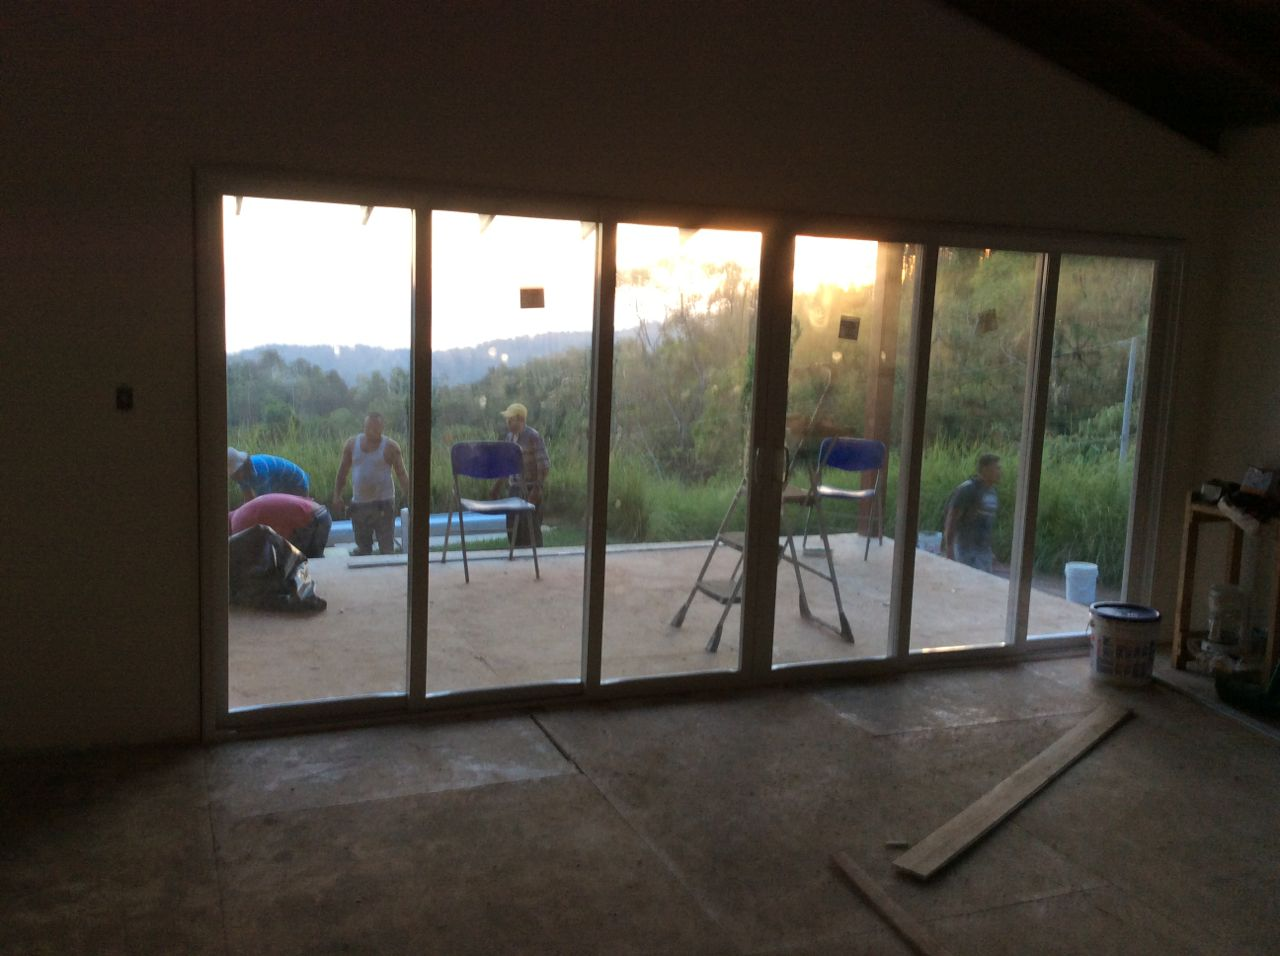 Patio from inside